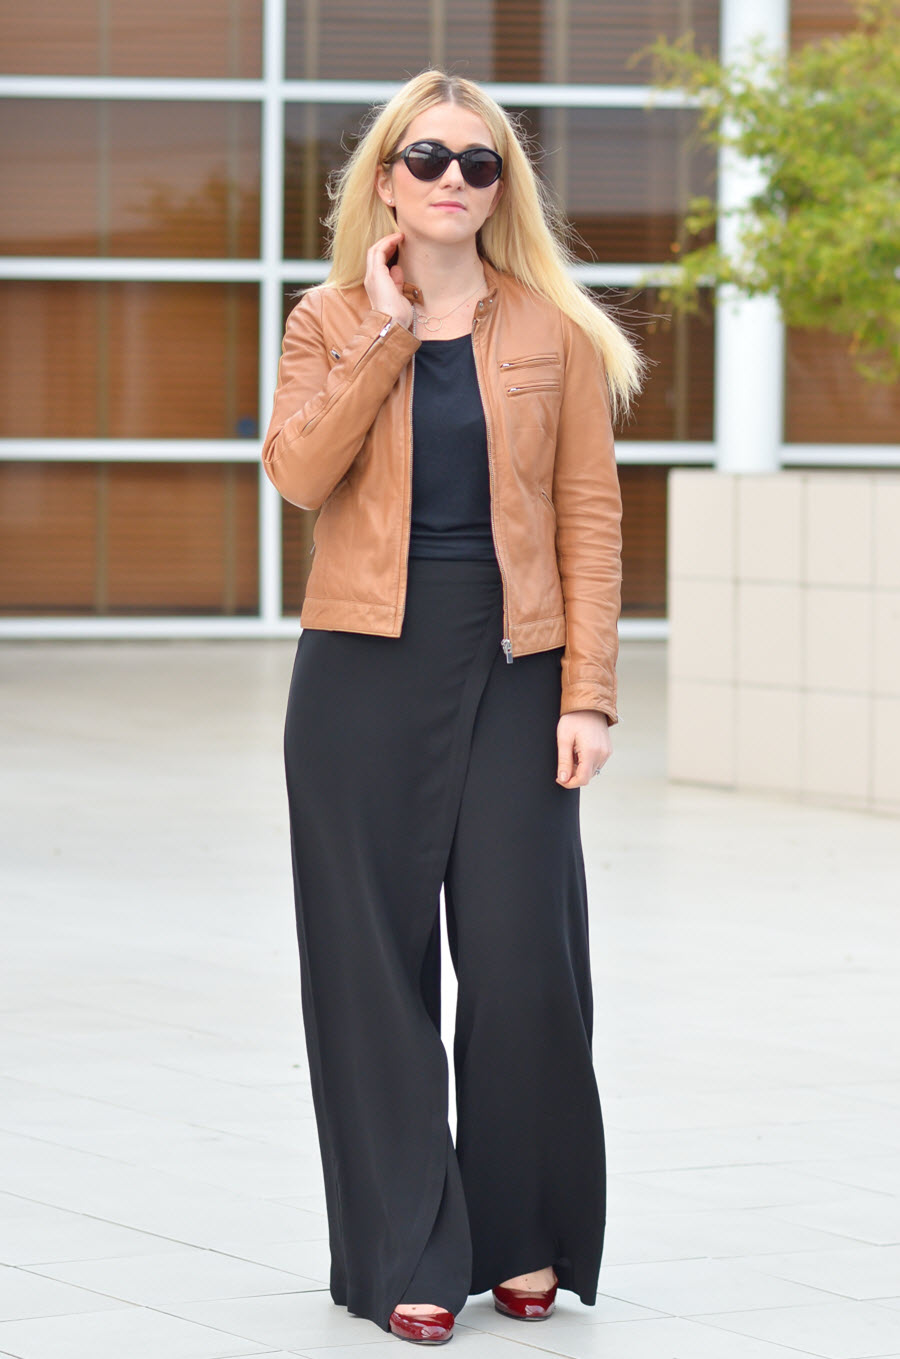 Tan Leather Jacket Outfit to Work